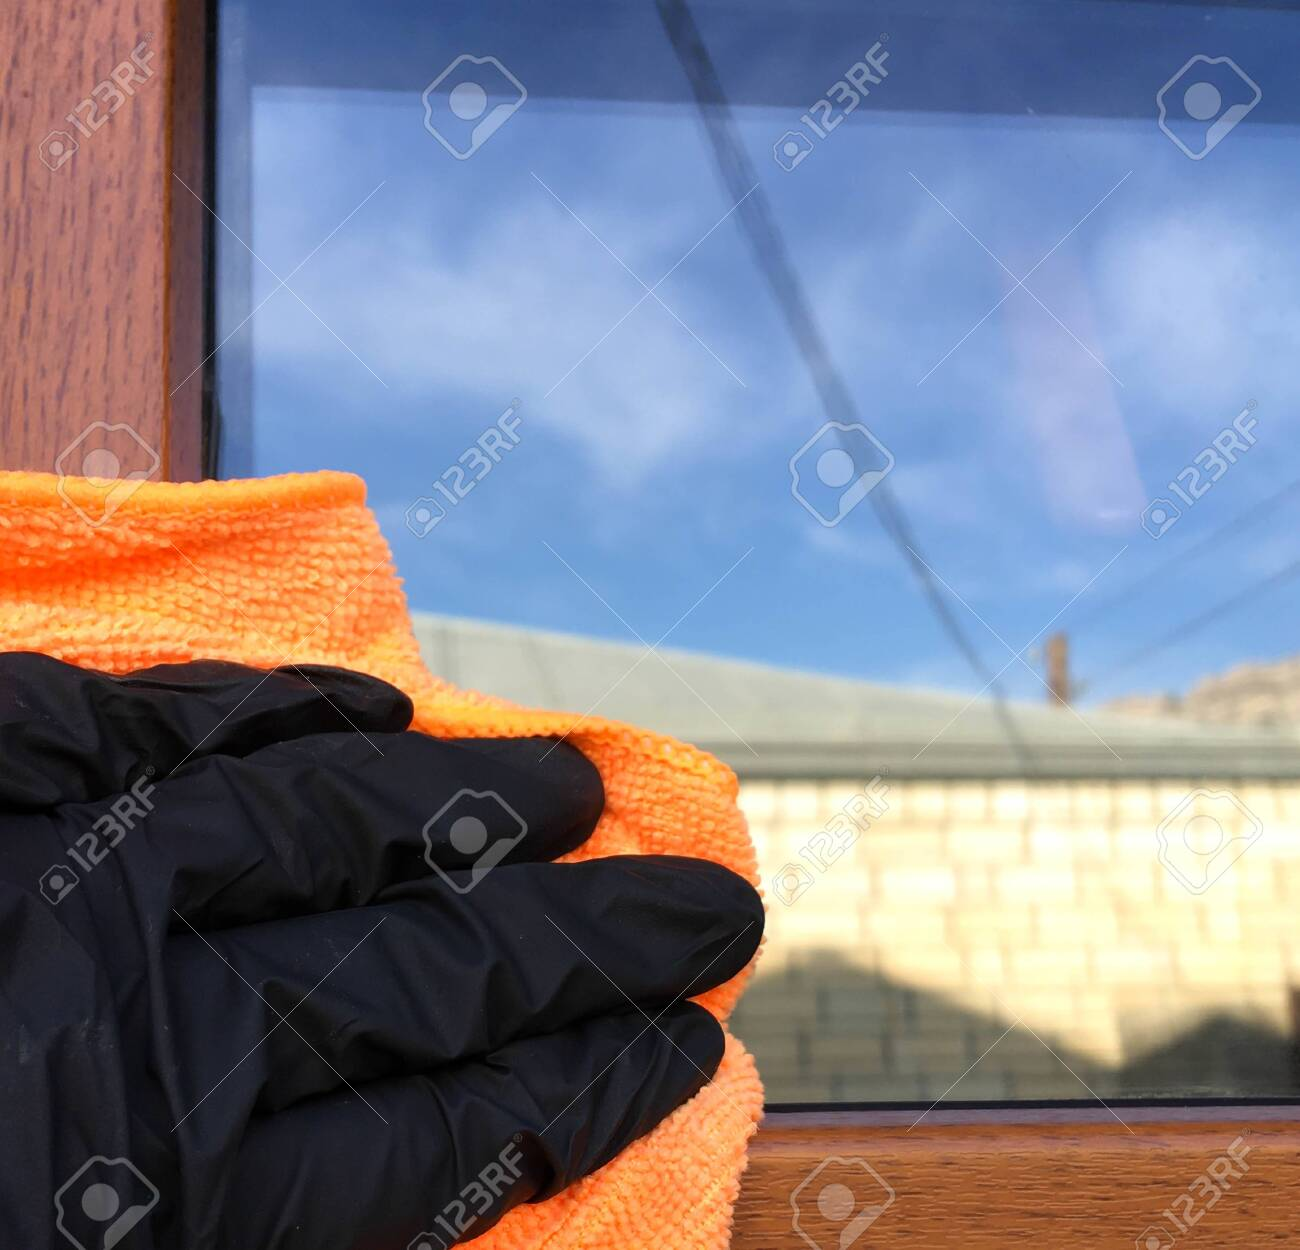 Window cleaning with detergent, spring cleaning concept.Hand in a black glove with a special tool washes a soap window on a background of trees - 148013015